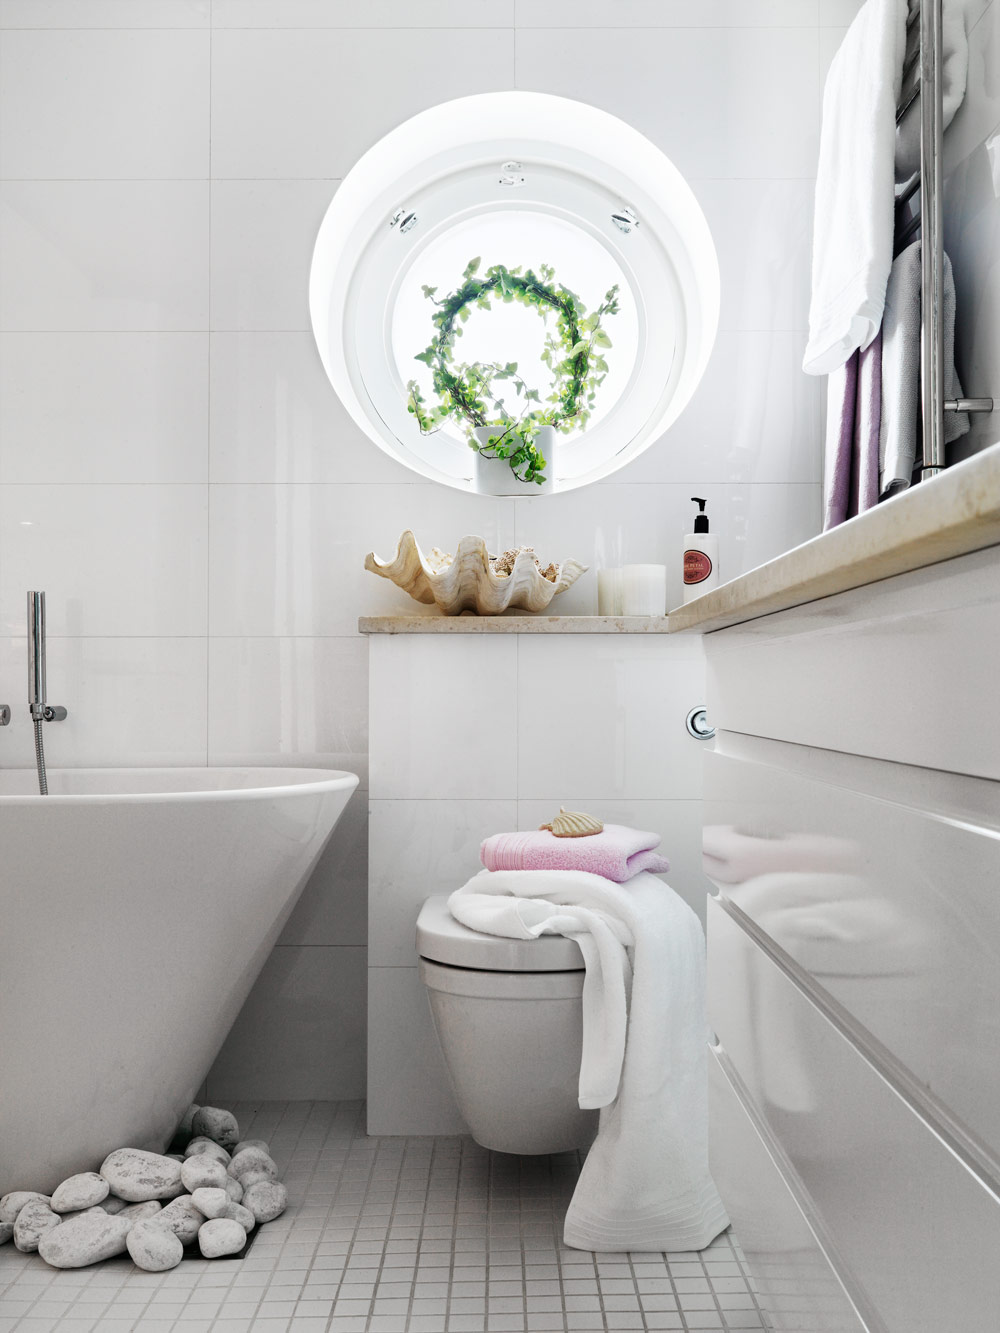 Stylish small bathroom with an unusual decor digsdigs for Bathroom design small